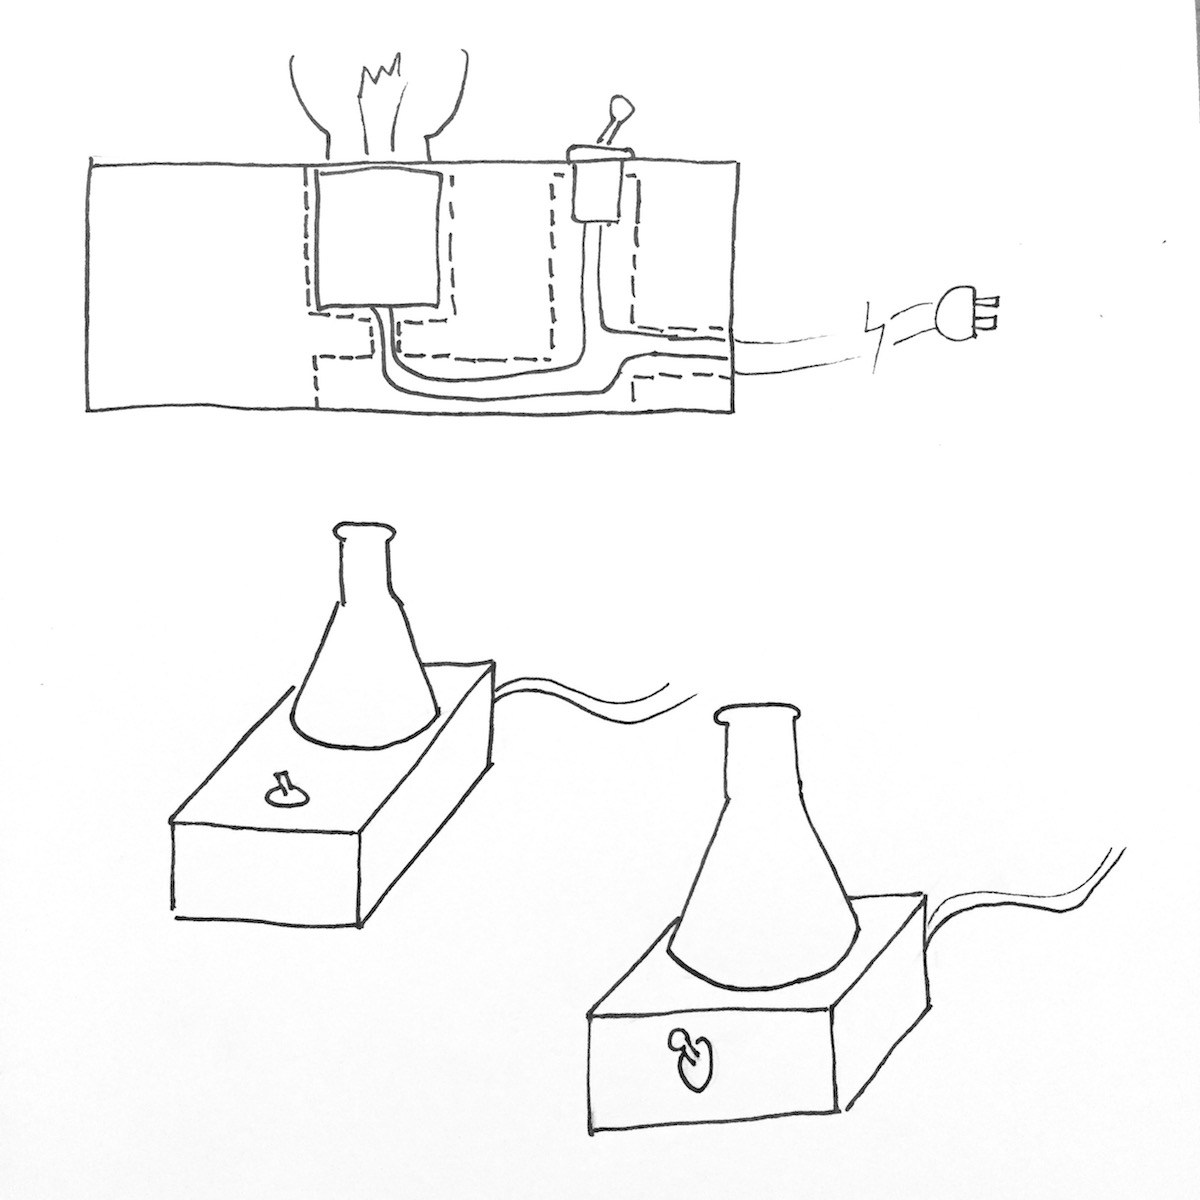 The Laboratory Lamp Is A Bulb Inside An Erlenmeyer Flask